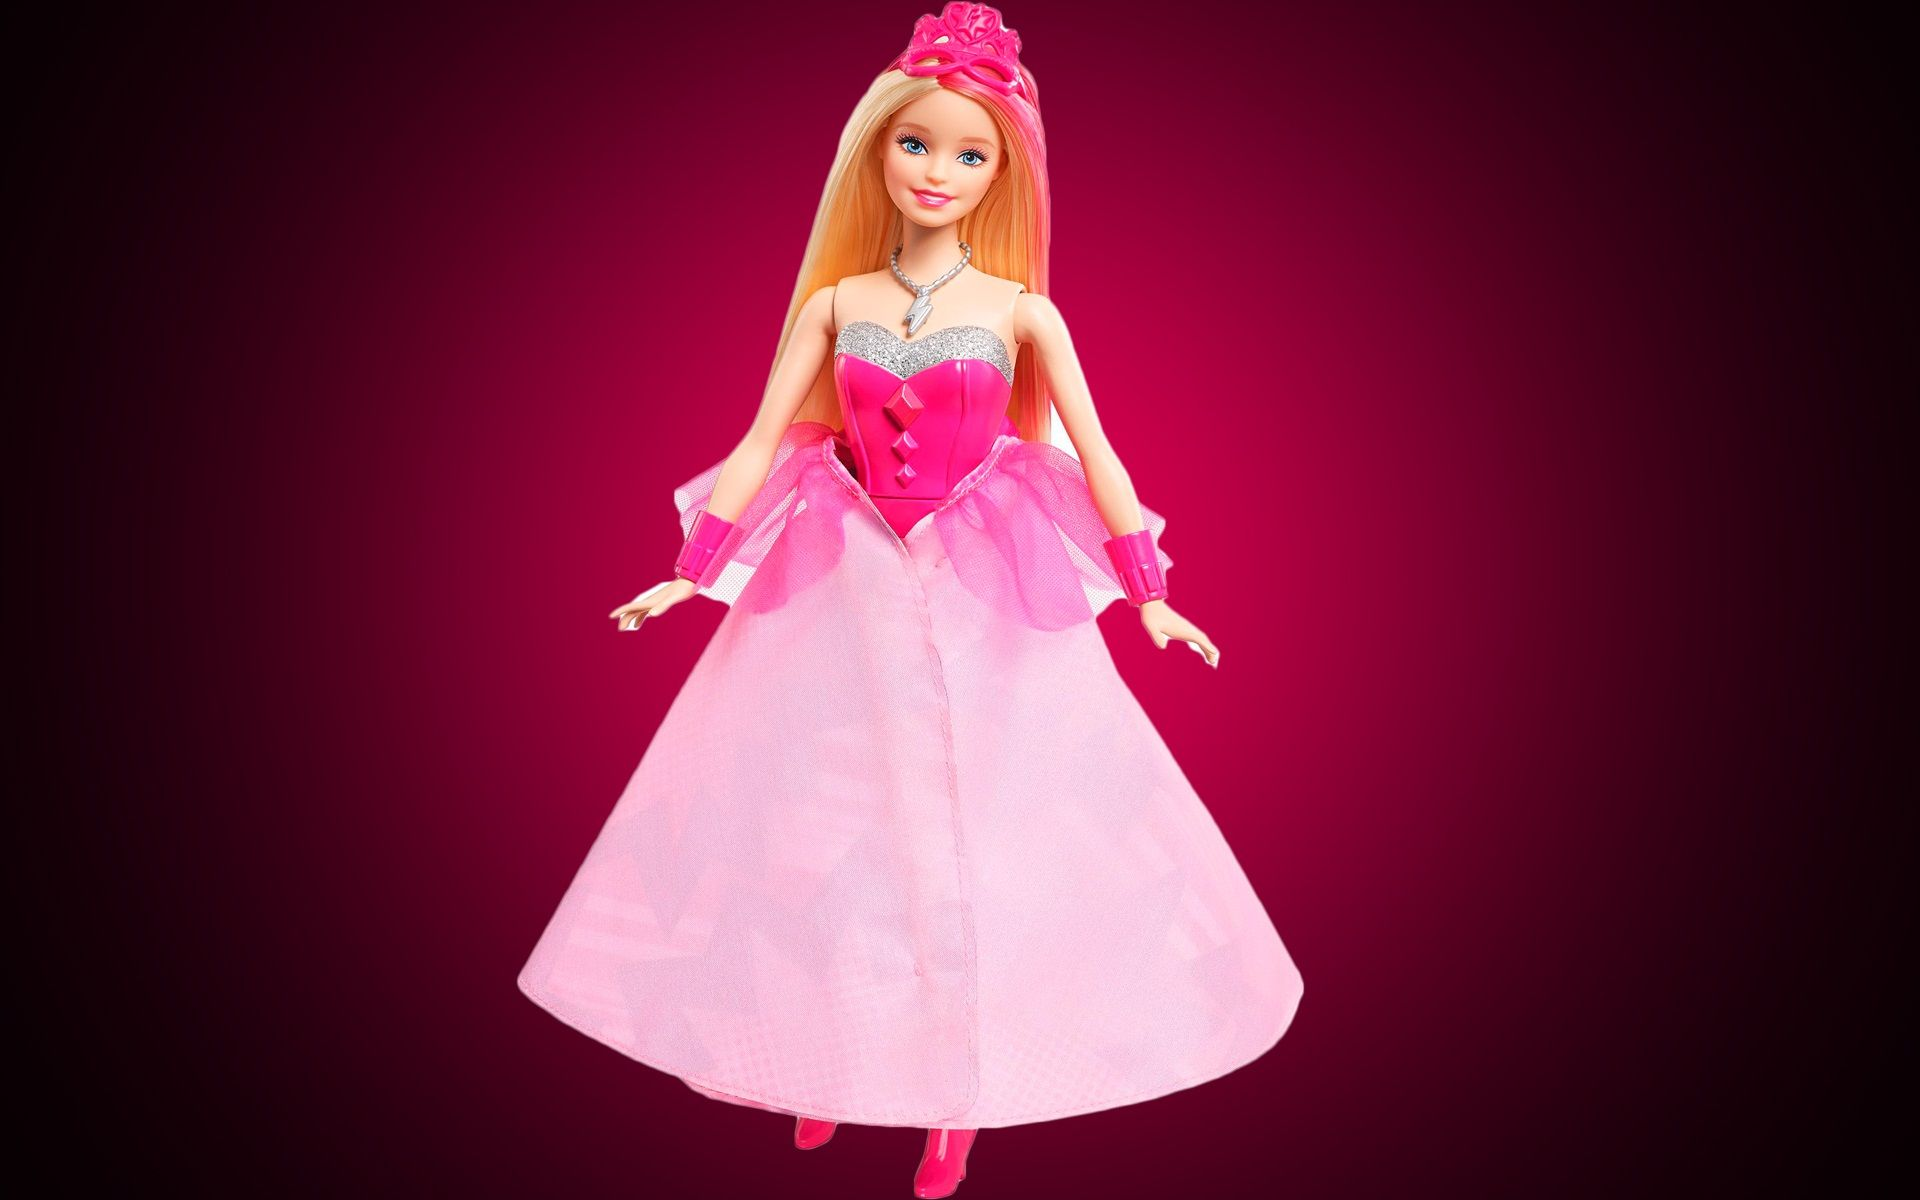 Barbie Mobili ~ Top beautiful lovely cute barbie doll hd wallpapers images hd